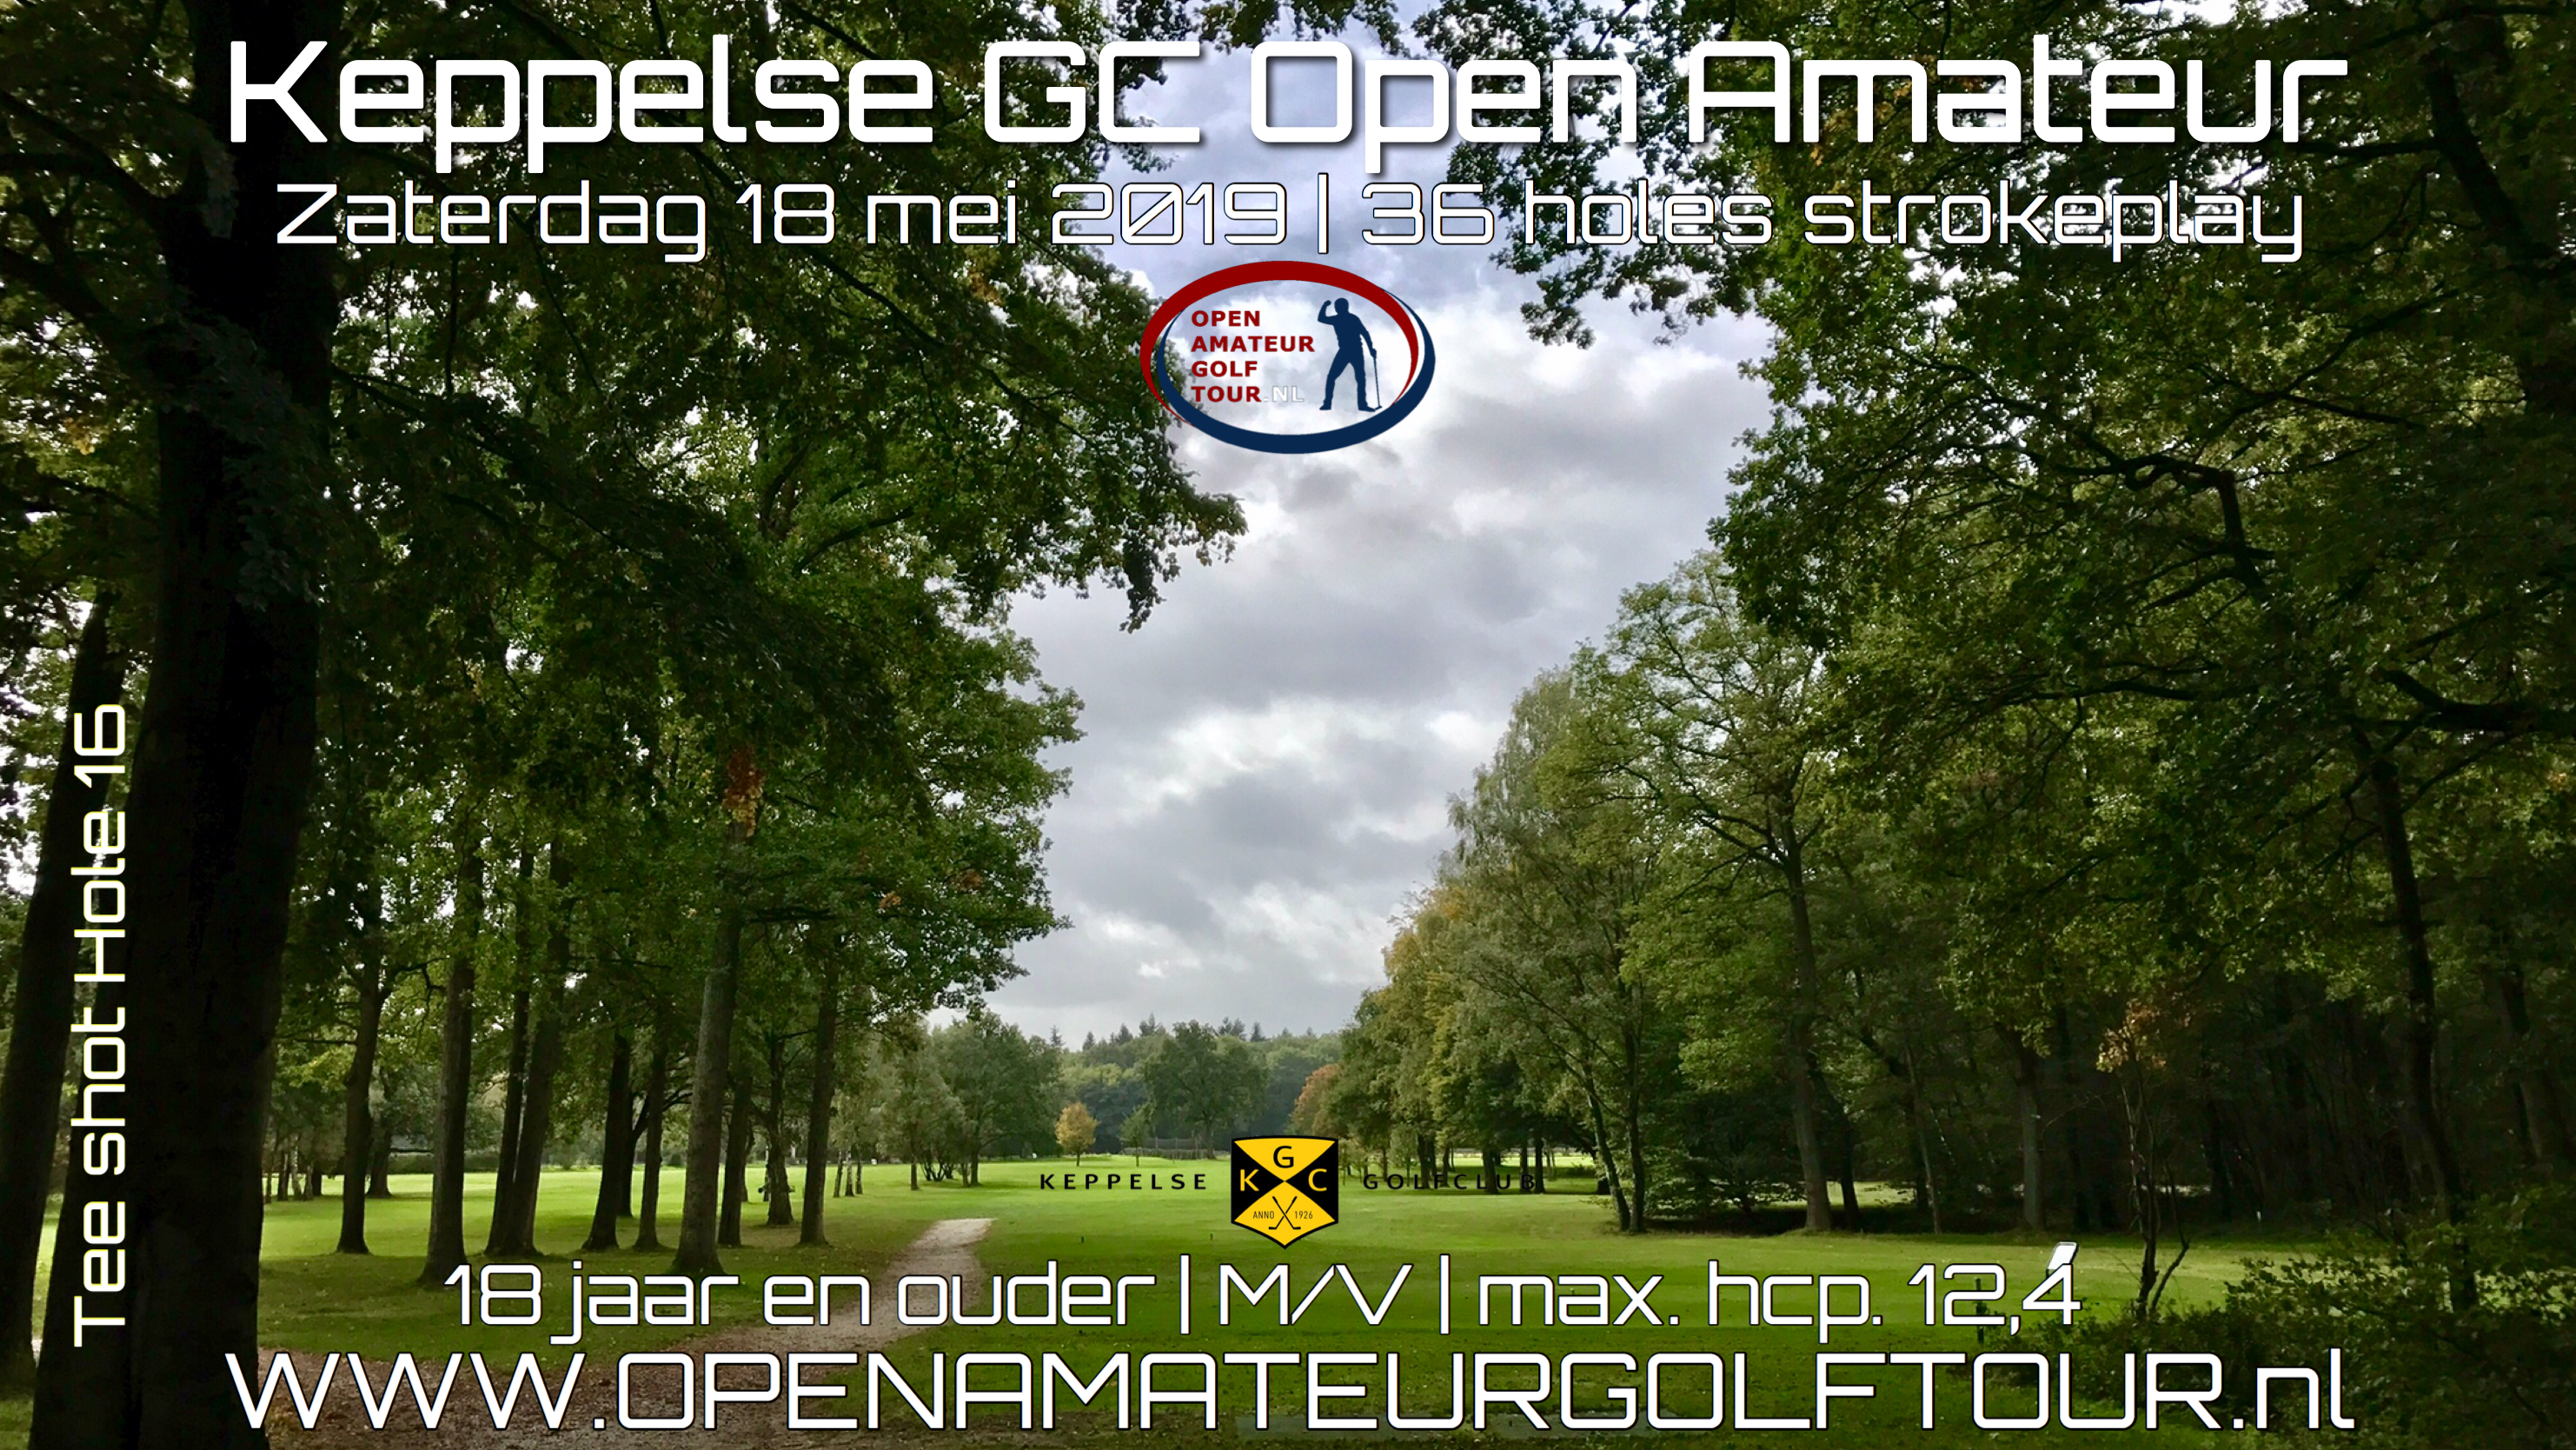 Keppelse Open Amateur Golf Tour poster 2019